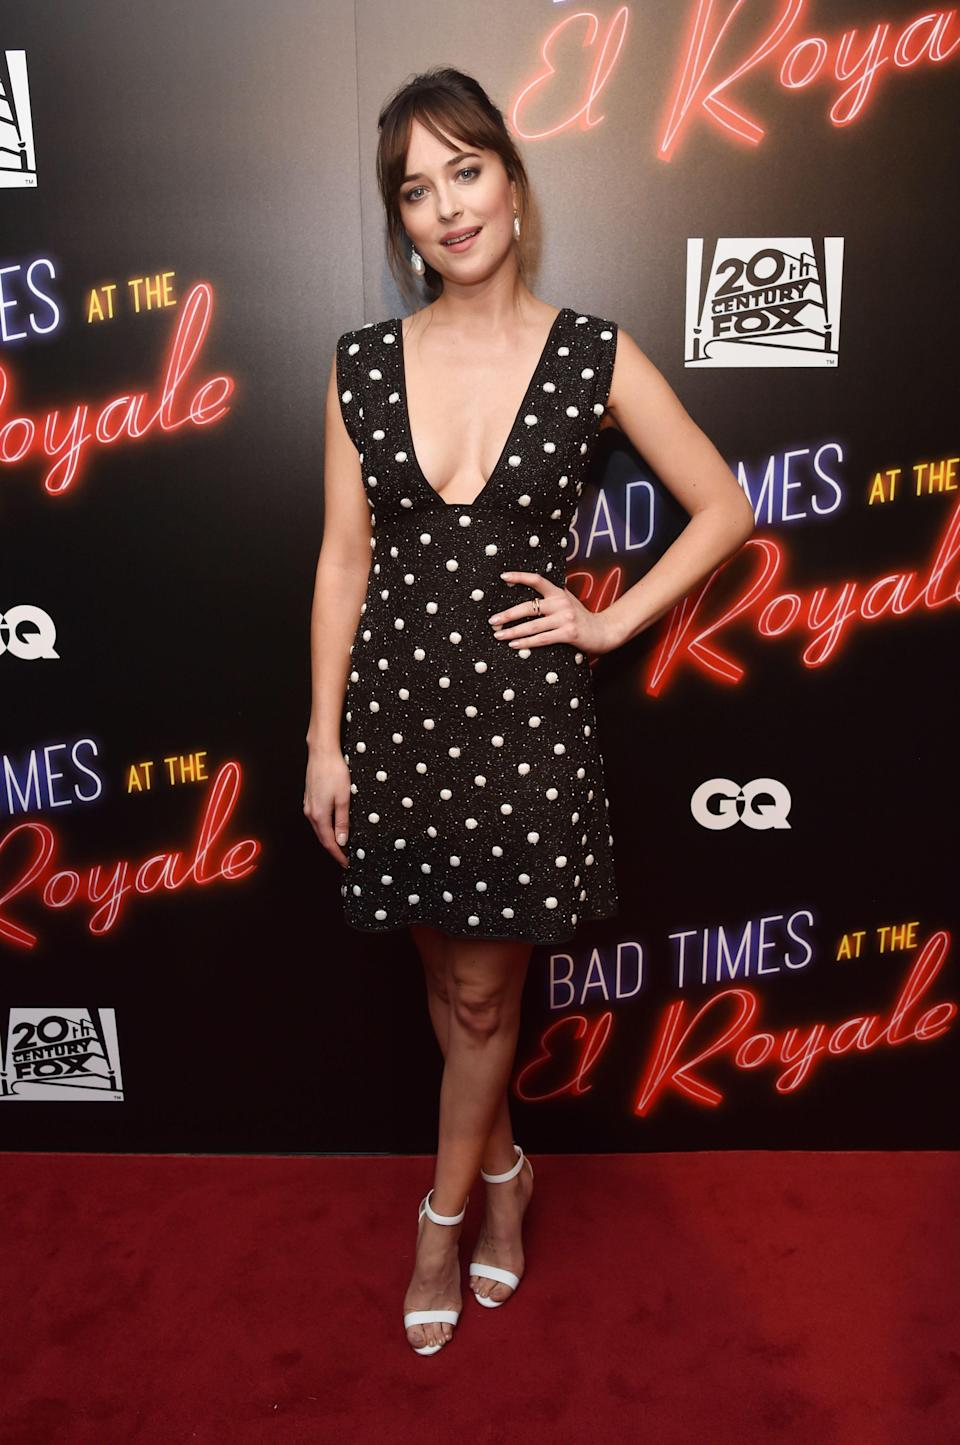 <p>Dakota Johnson looked pretty as a picture wearing a low-cut polka dot dress by hit Danish label Ganni to the premiere of 'Bad Times at the El Royale'.<br>[Photo: Rex] </p>